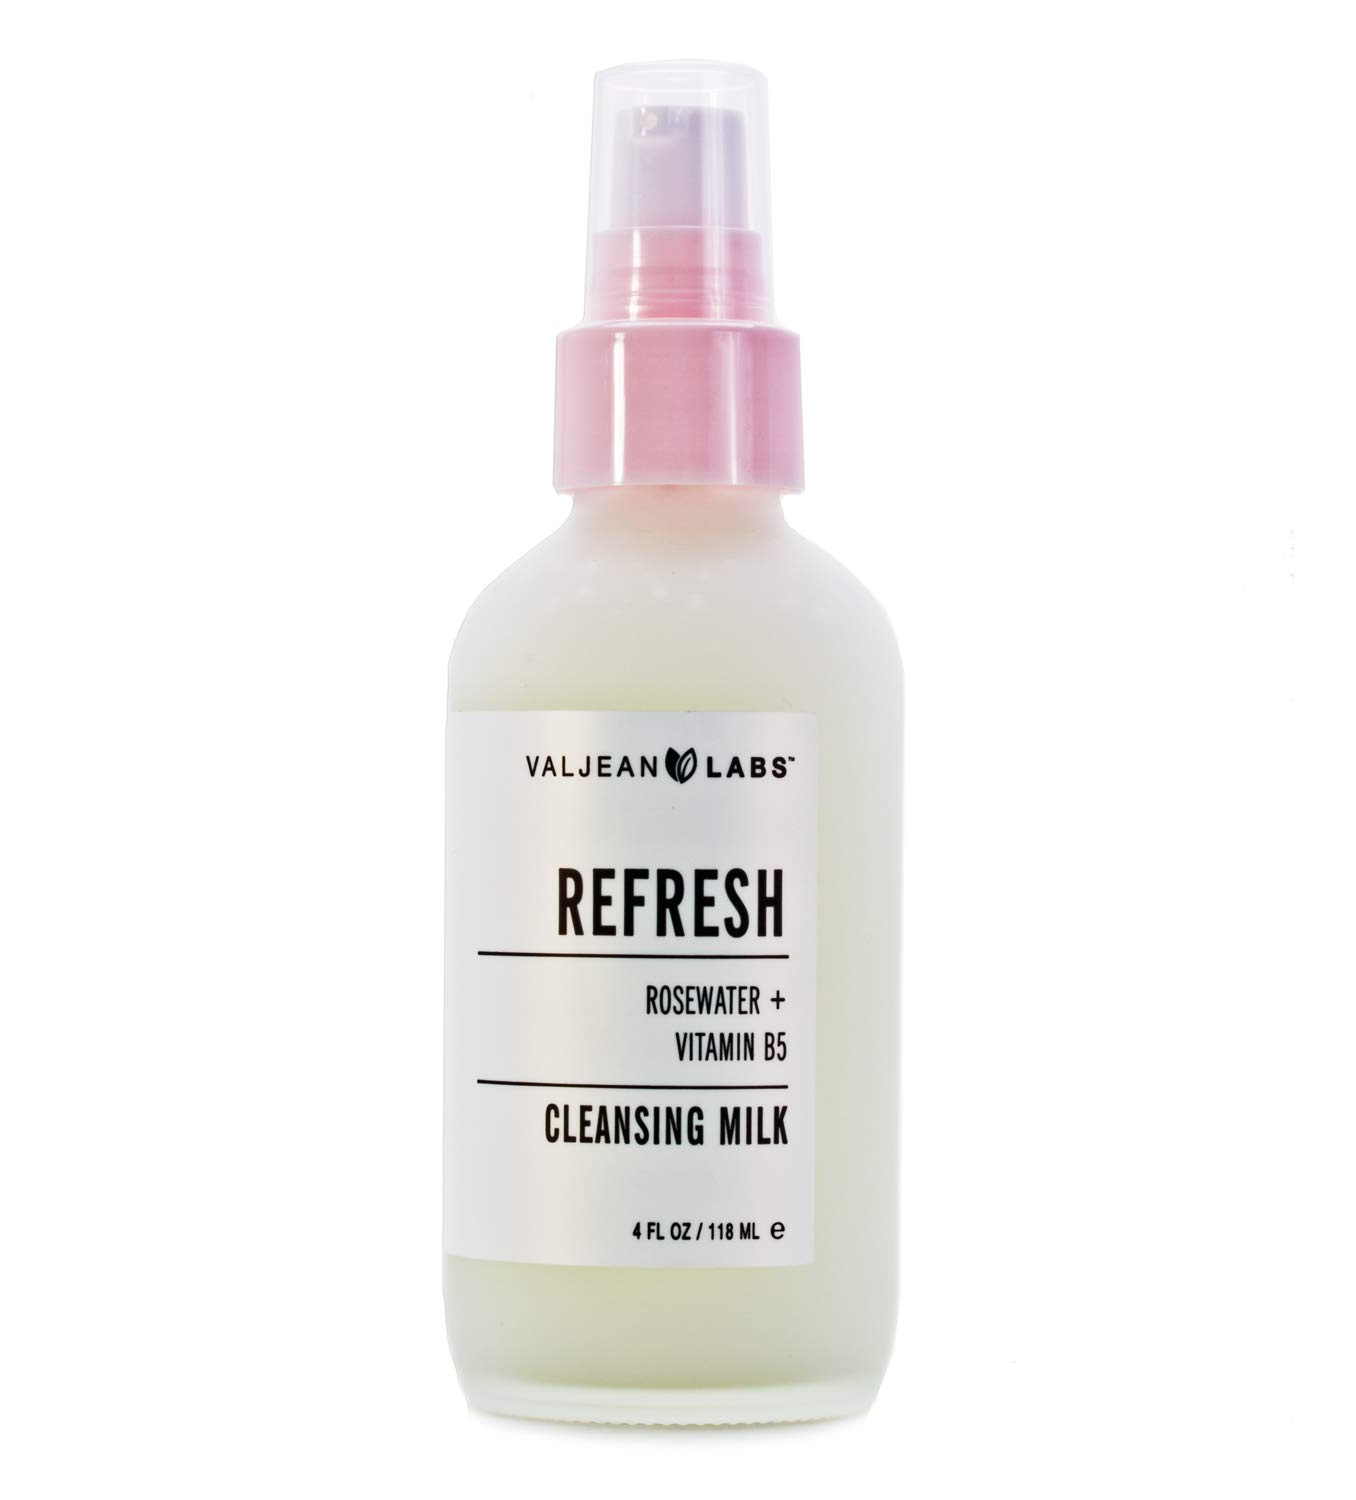 Valjean Labs Refresh Cleansing Milk